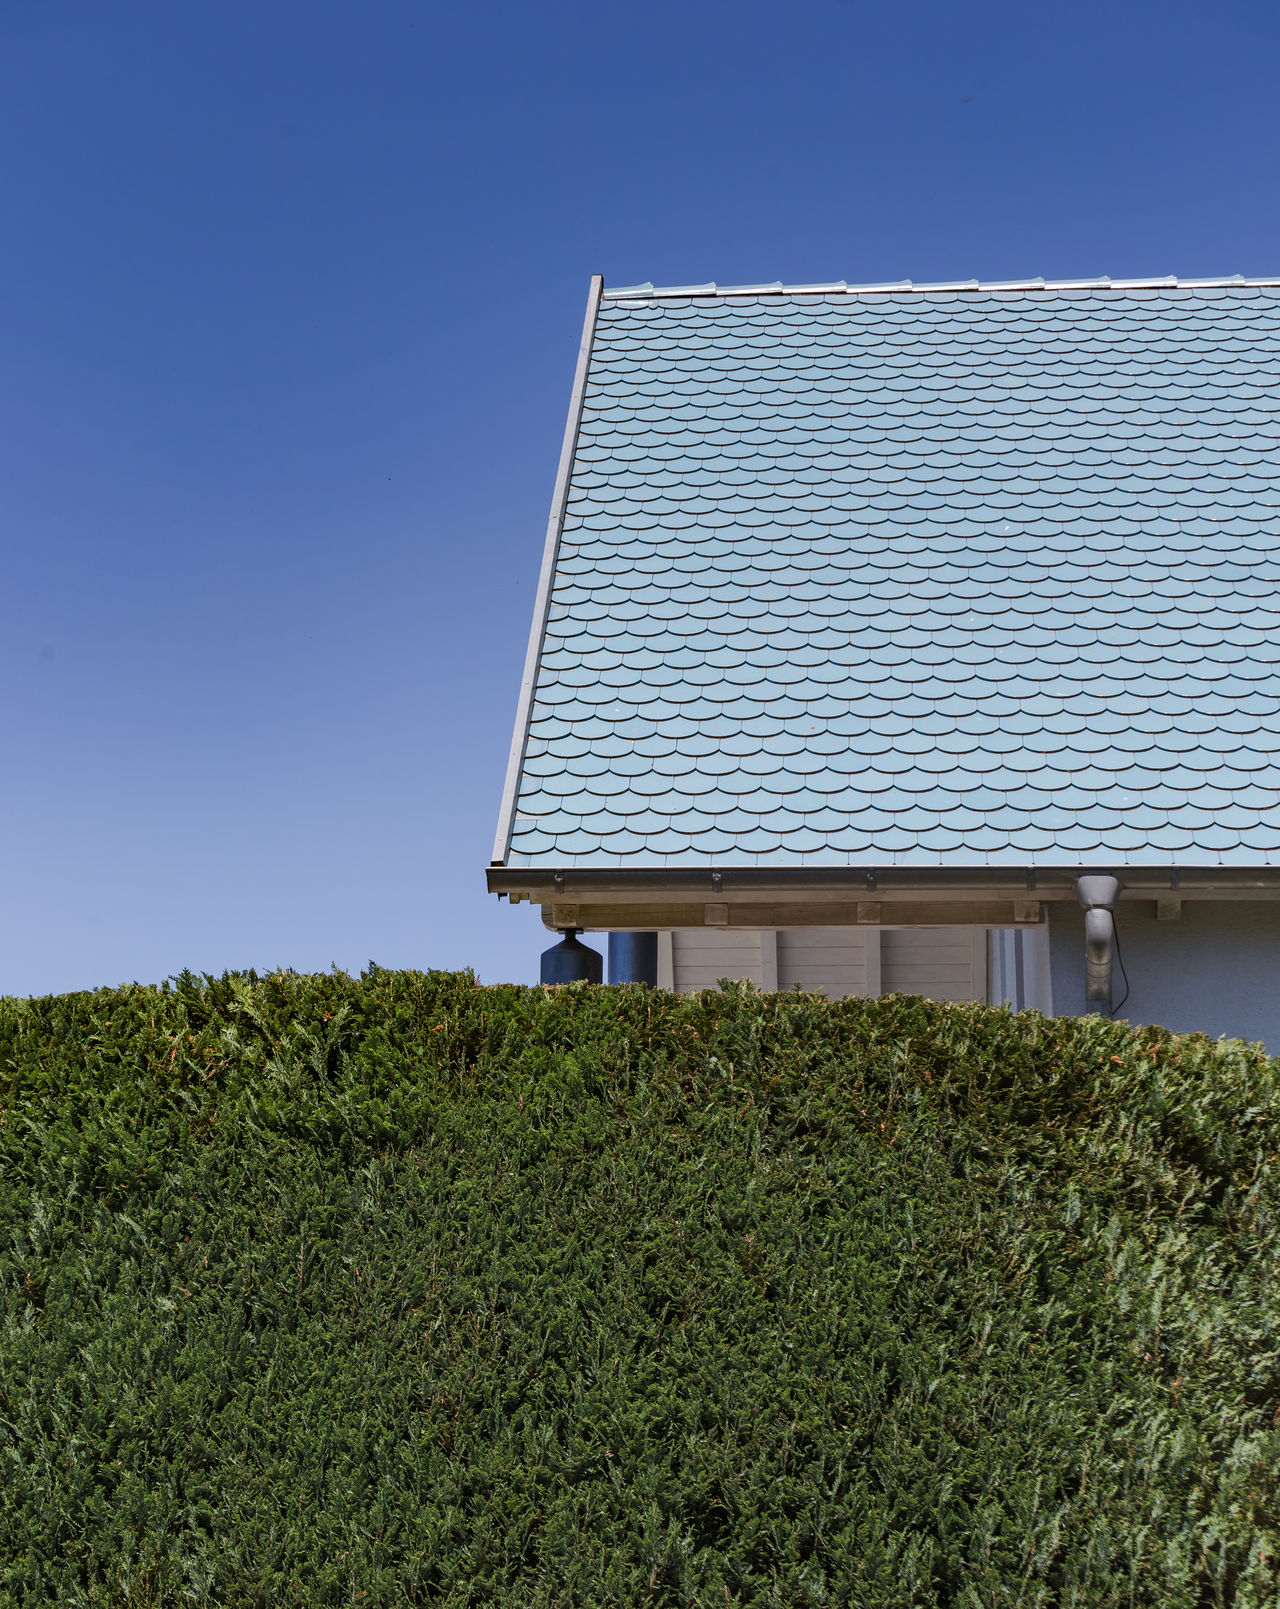 Hedge by house against clear sky